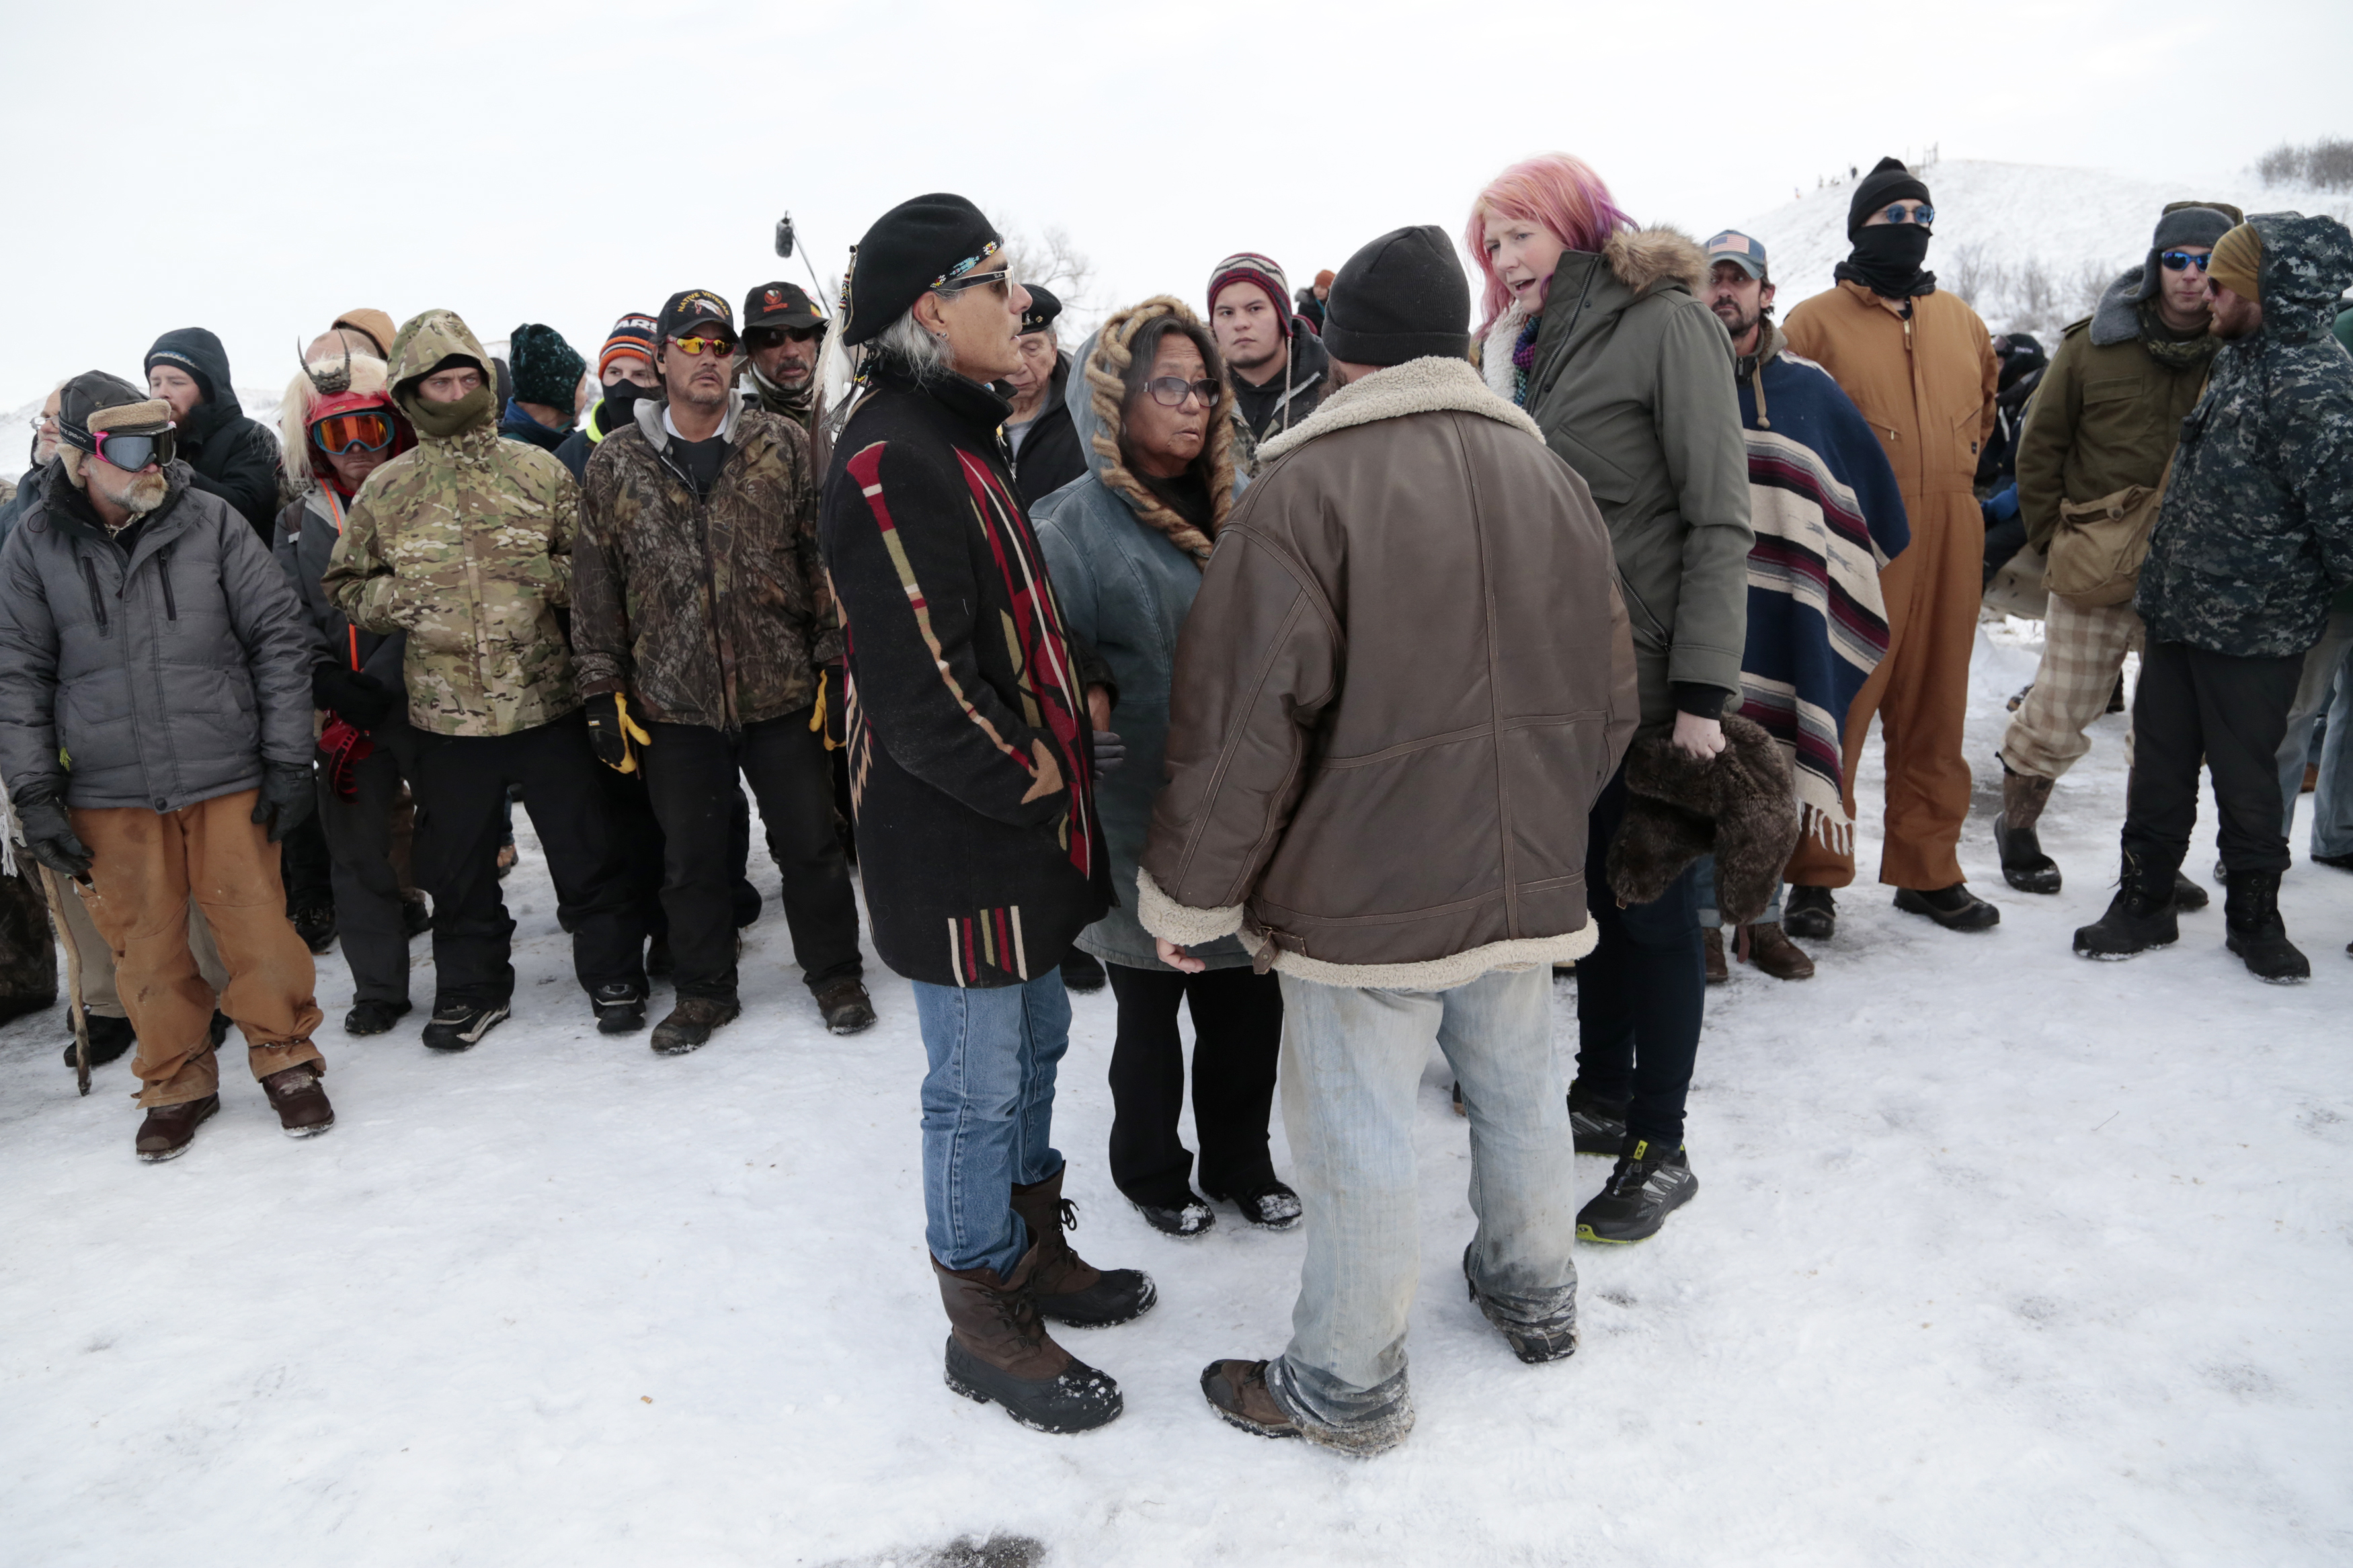 Phyllis Young, center, of the Standing Rock Sioux Tribe talks with veterans who oppose the Dakota Access oil pipeline on Backwater Bridge near Cannon Ball, N.D., Dec. 2, 2016.